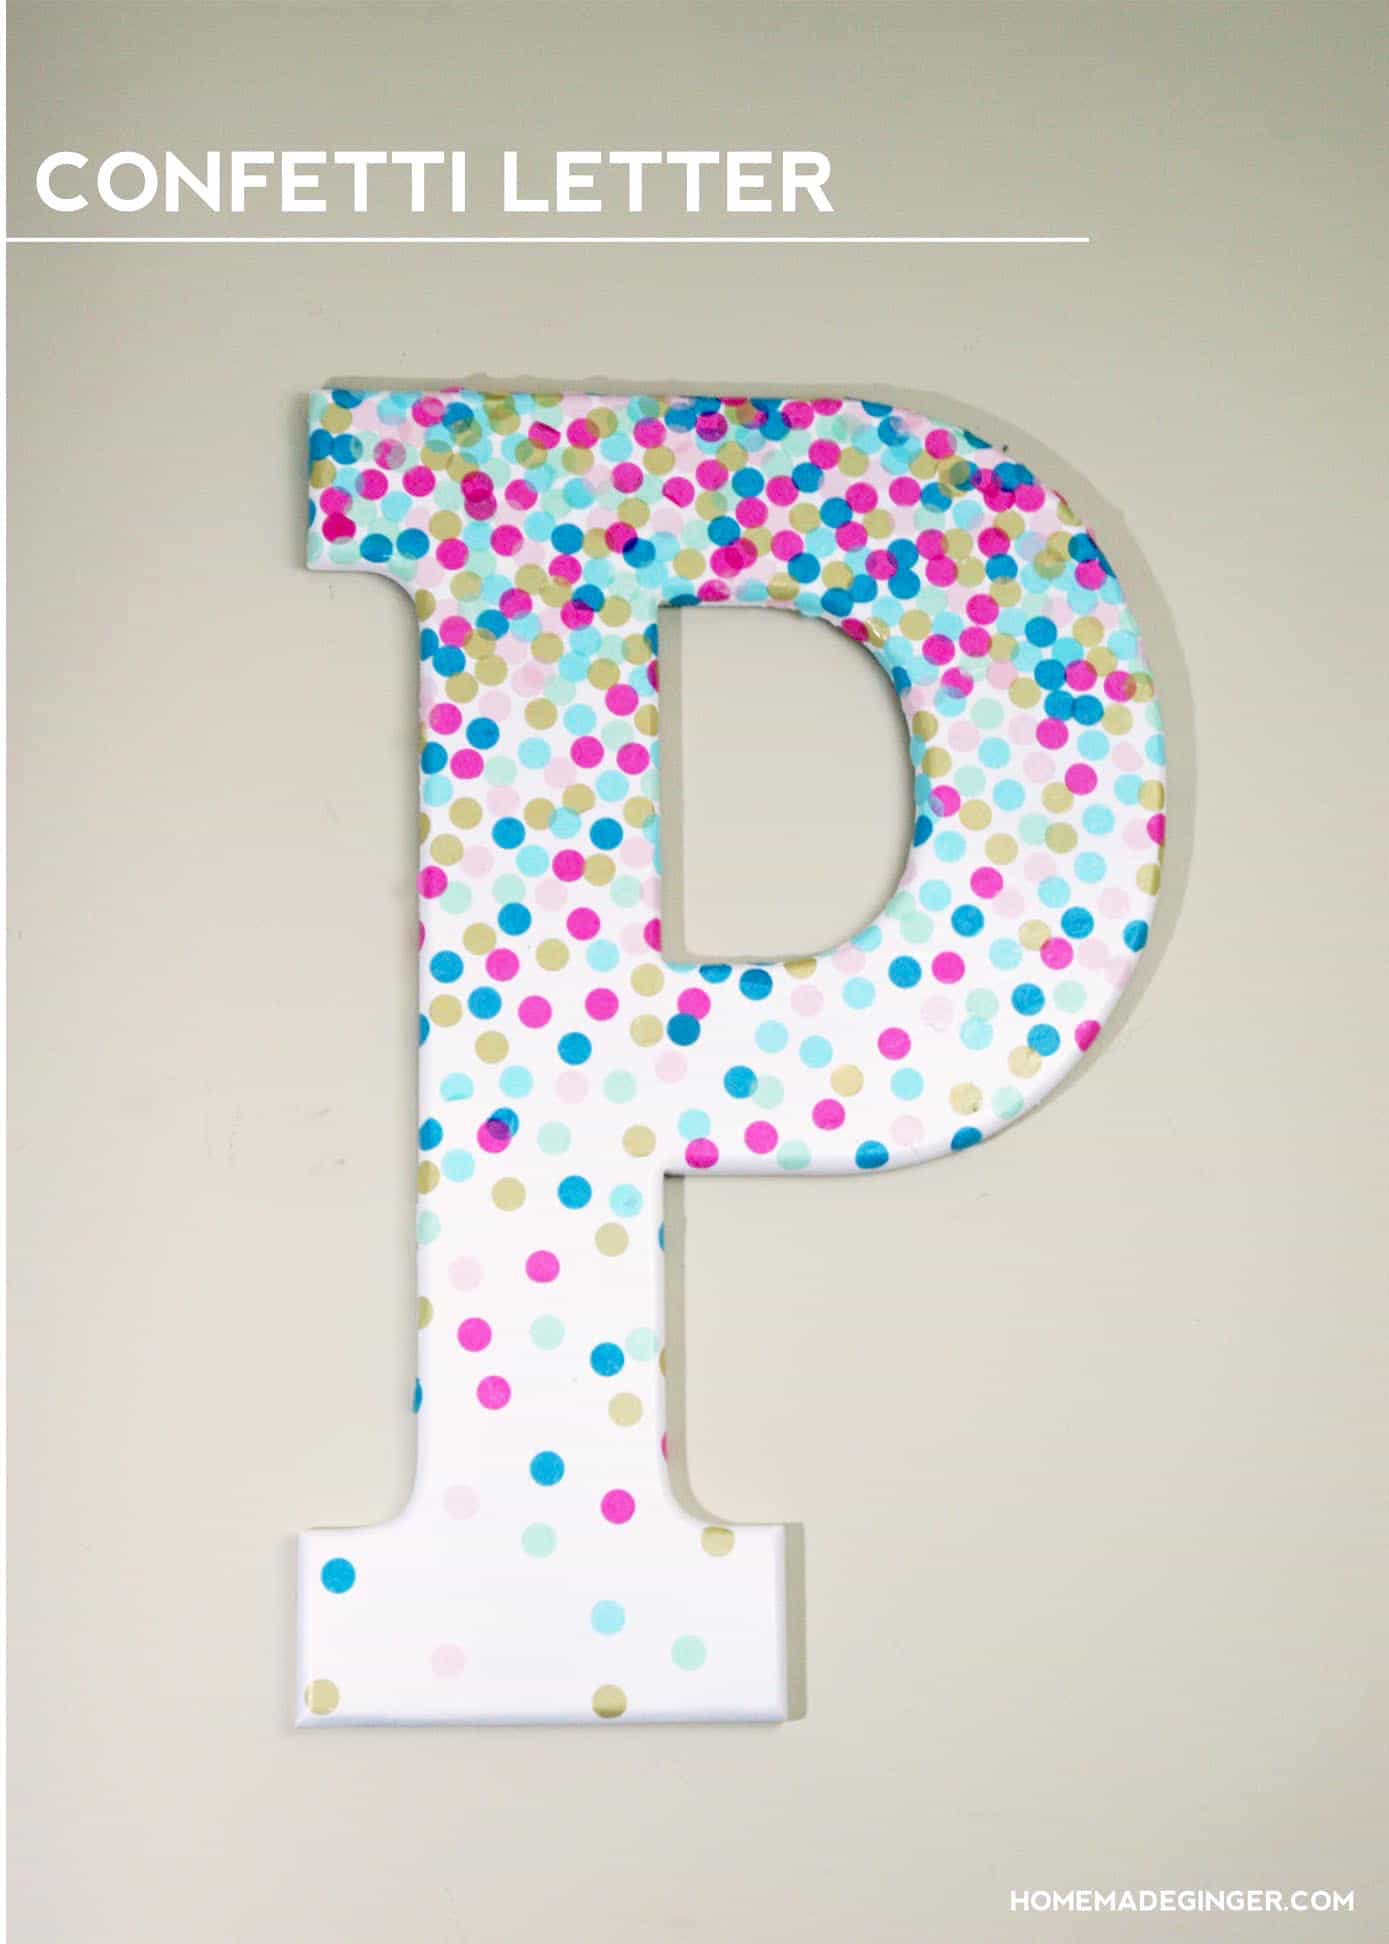 learn how to make decorative letters using confetti and mod podge this project is perfect - Letter Decor